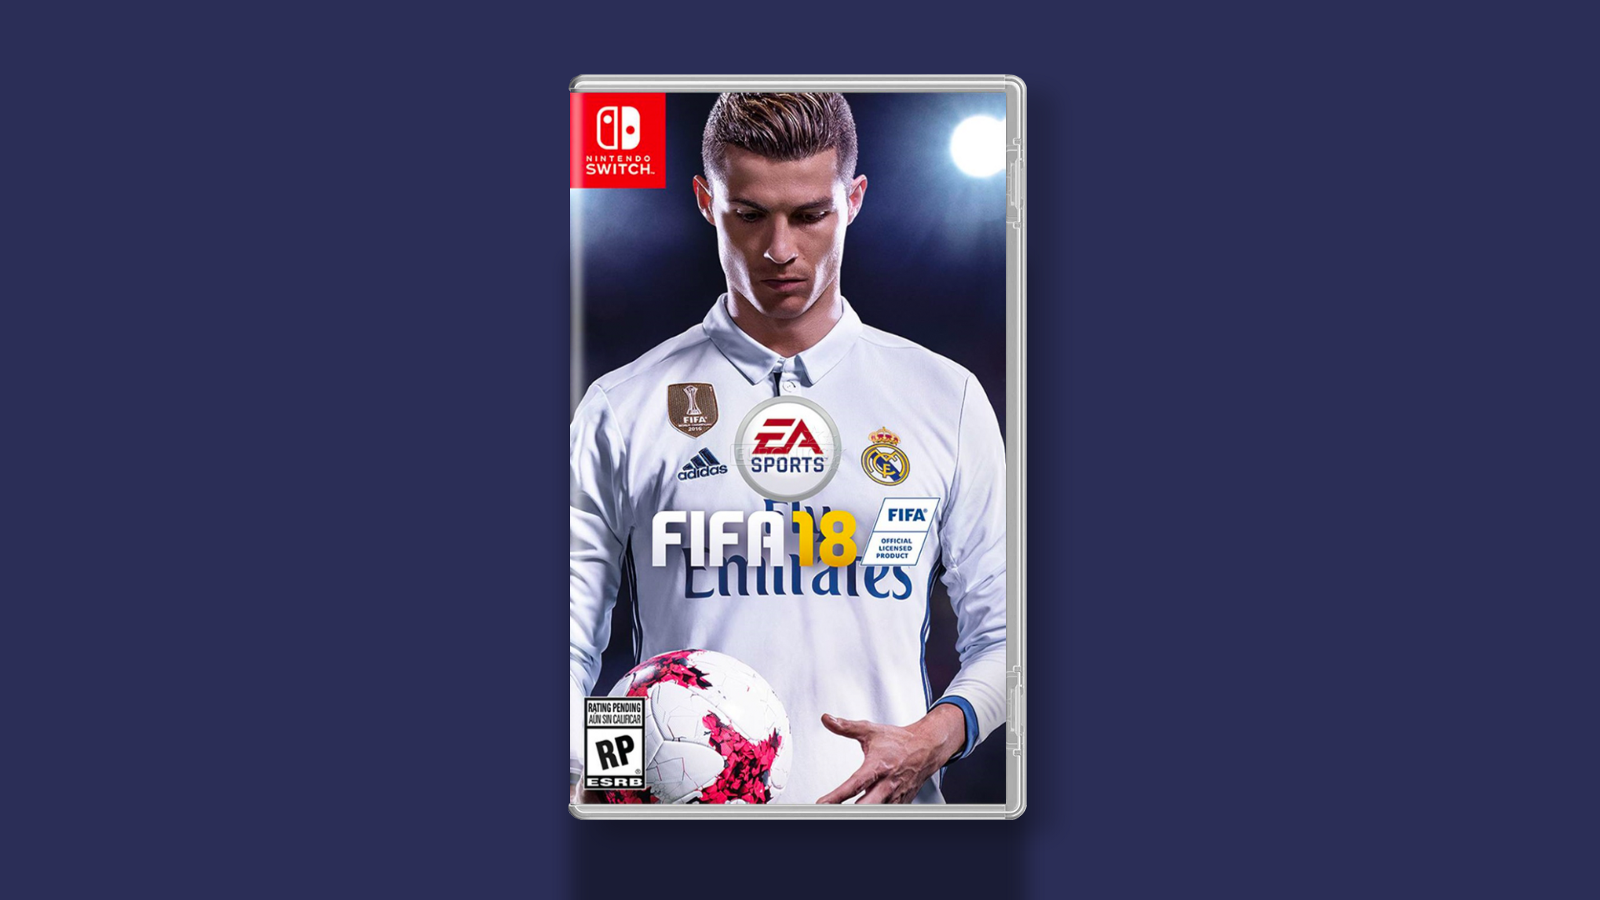 Gaming I Genuinely Struggle To See The Differences Between Versions Of FIFA Apart From Big Generational Leaps If Youre Looking For That Kind Review